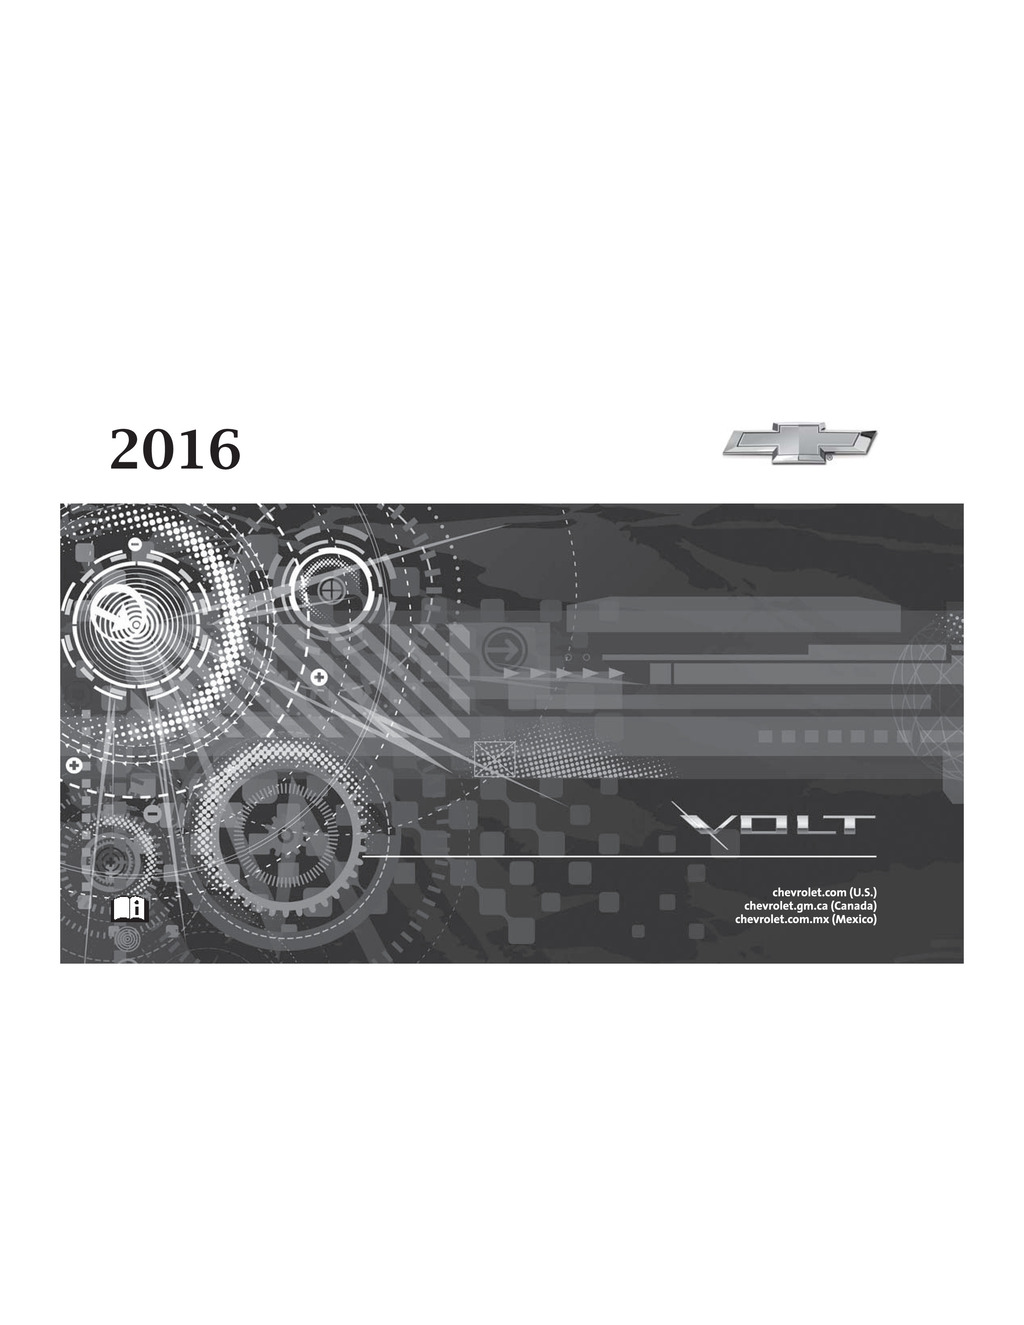 2016 Chevrolet Volt owners manual